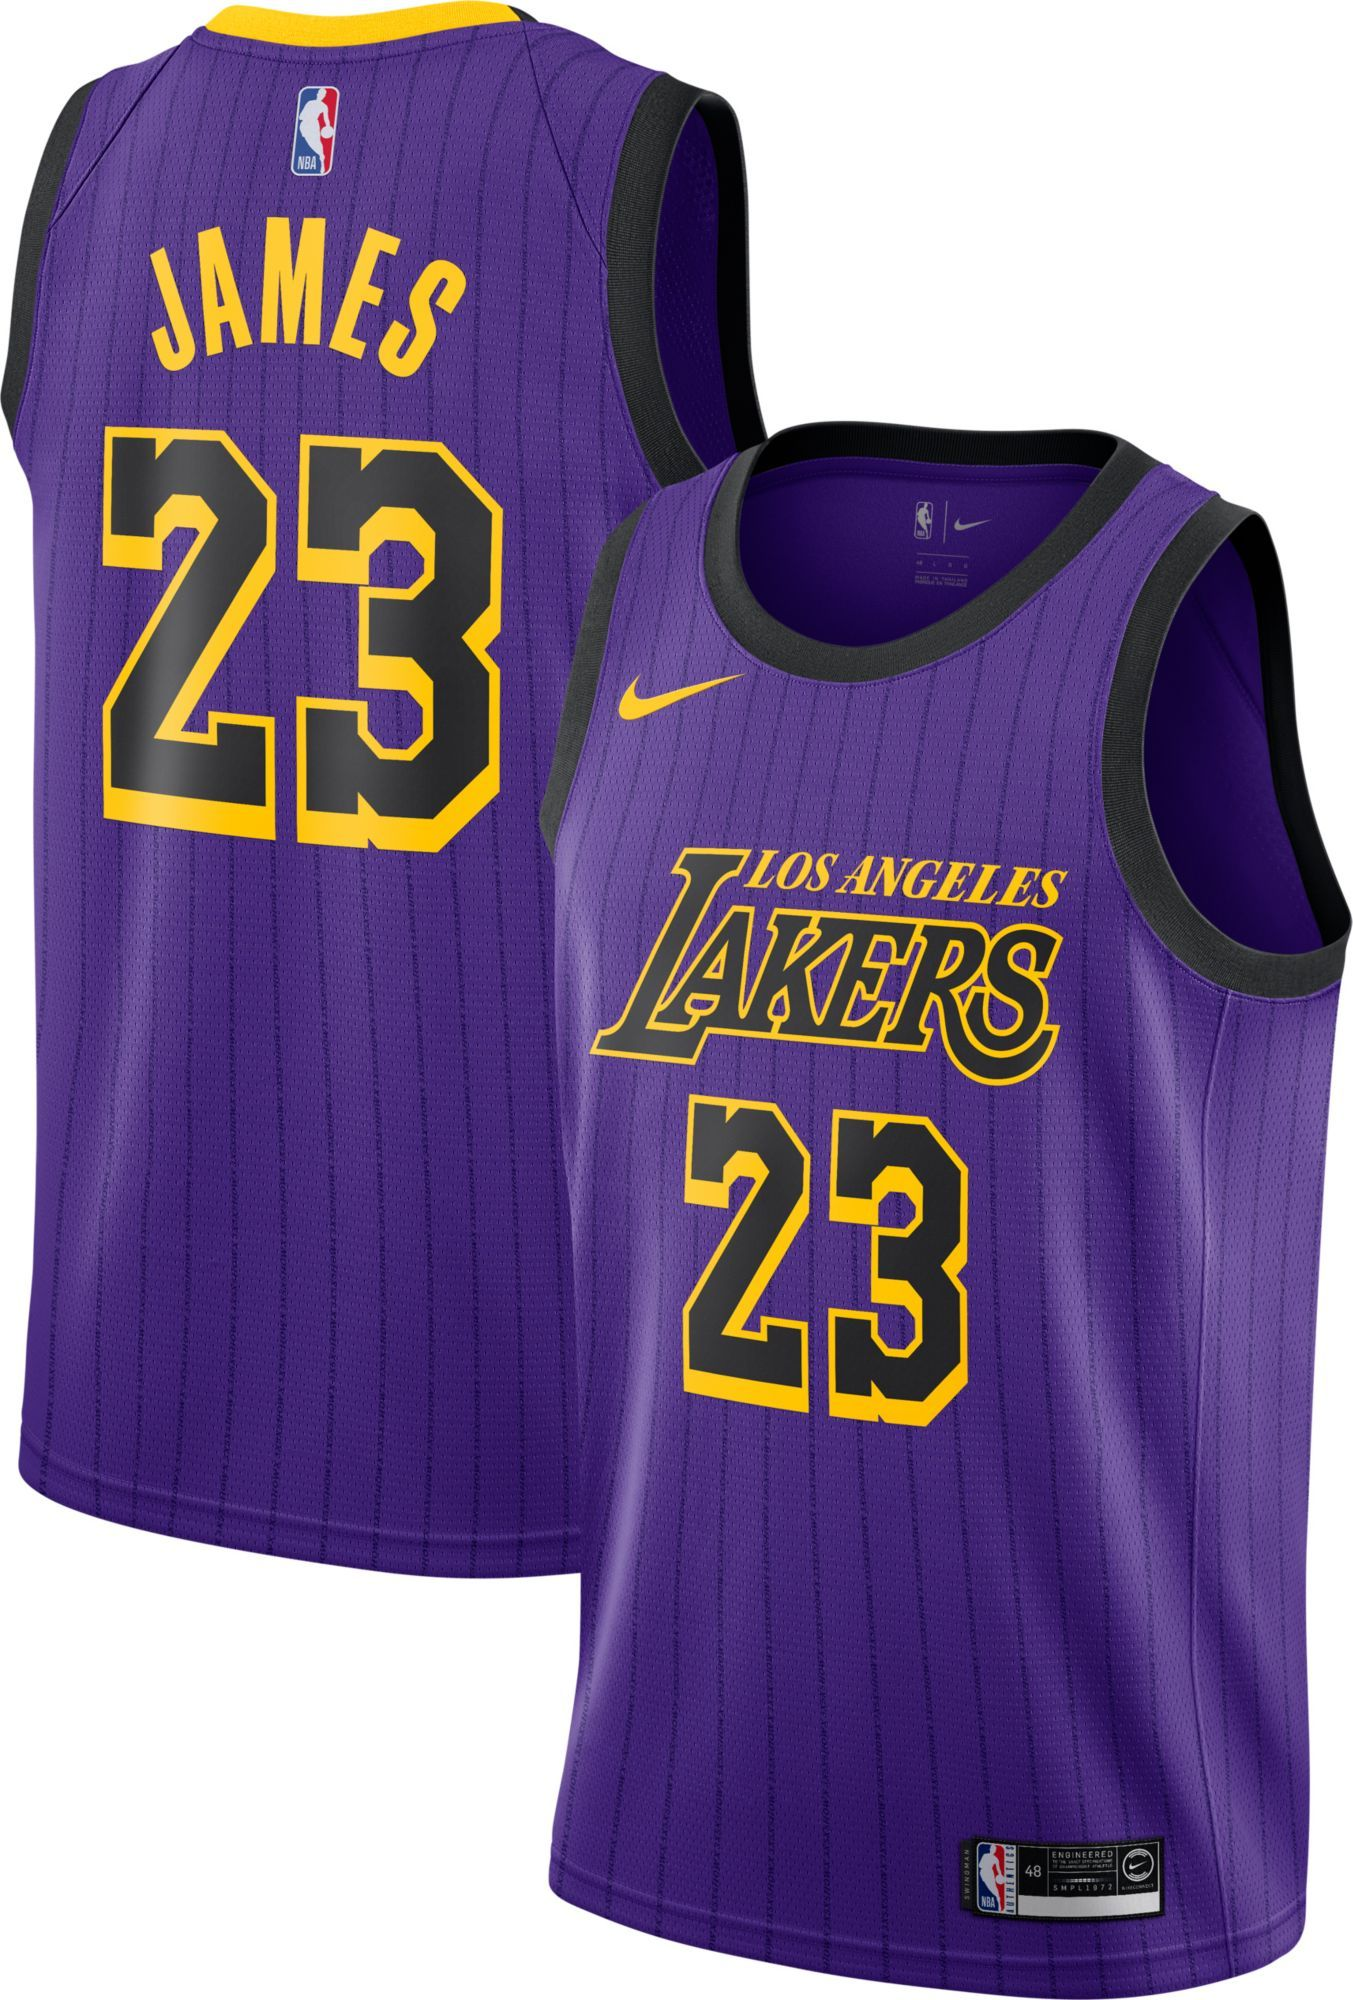 68414282d Nike Men s Los Angeles Lakers LeBron James Dri-FIT City Edition Swingman  Jersey